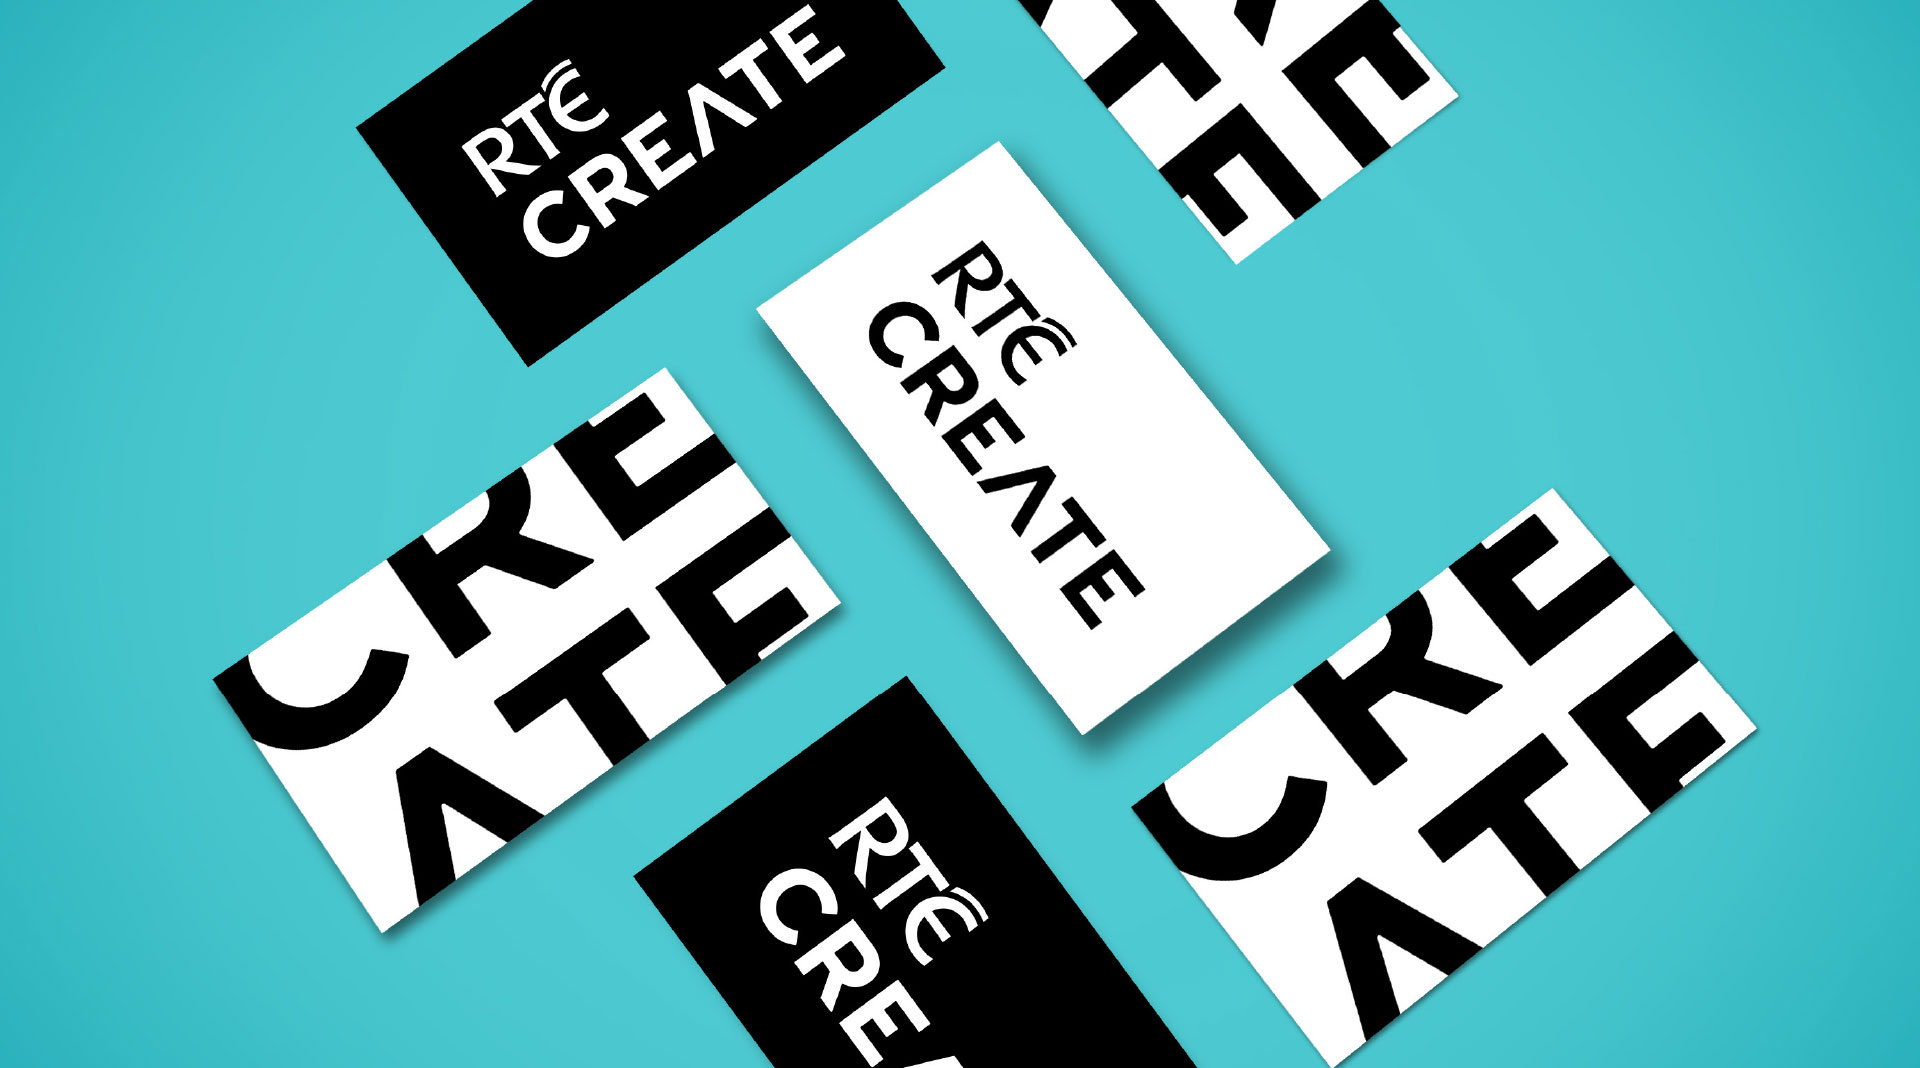 RTÉ Create Business Cards & Stationery